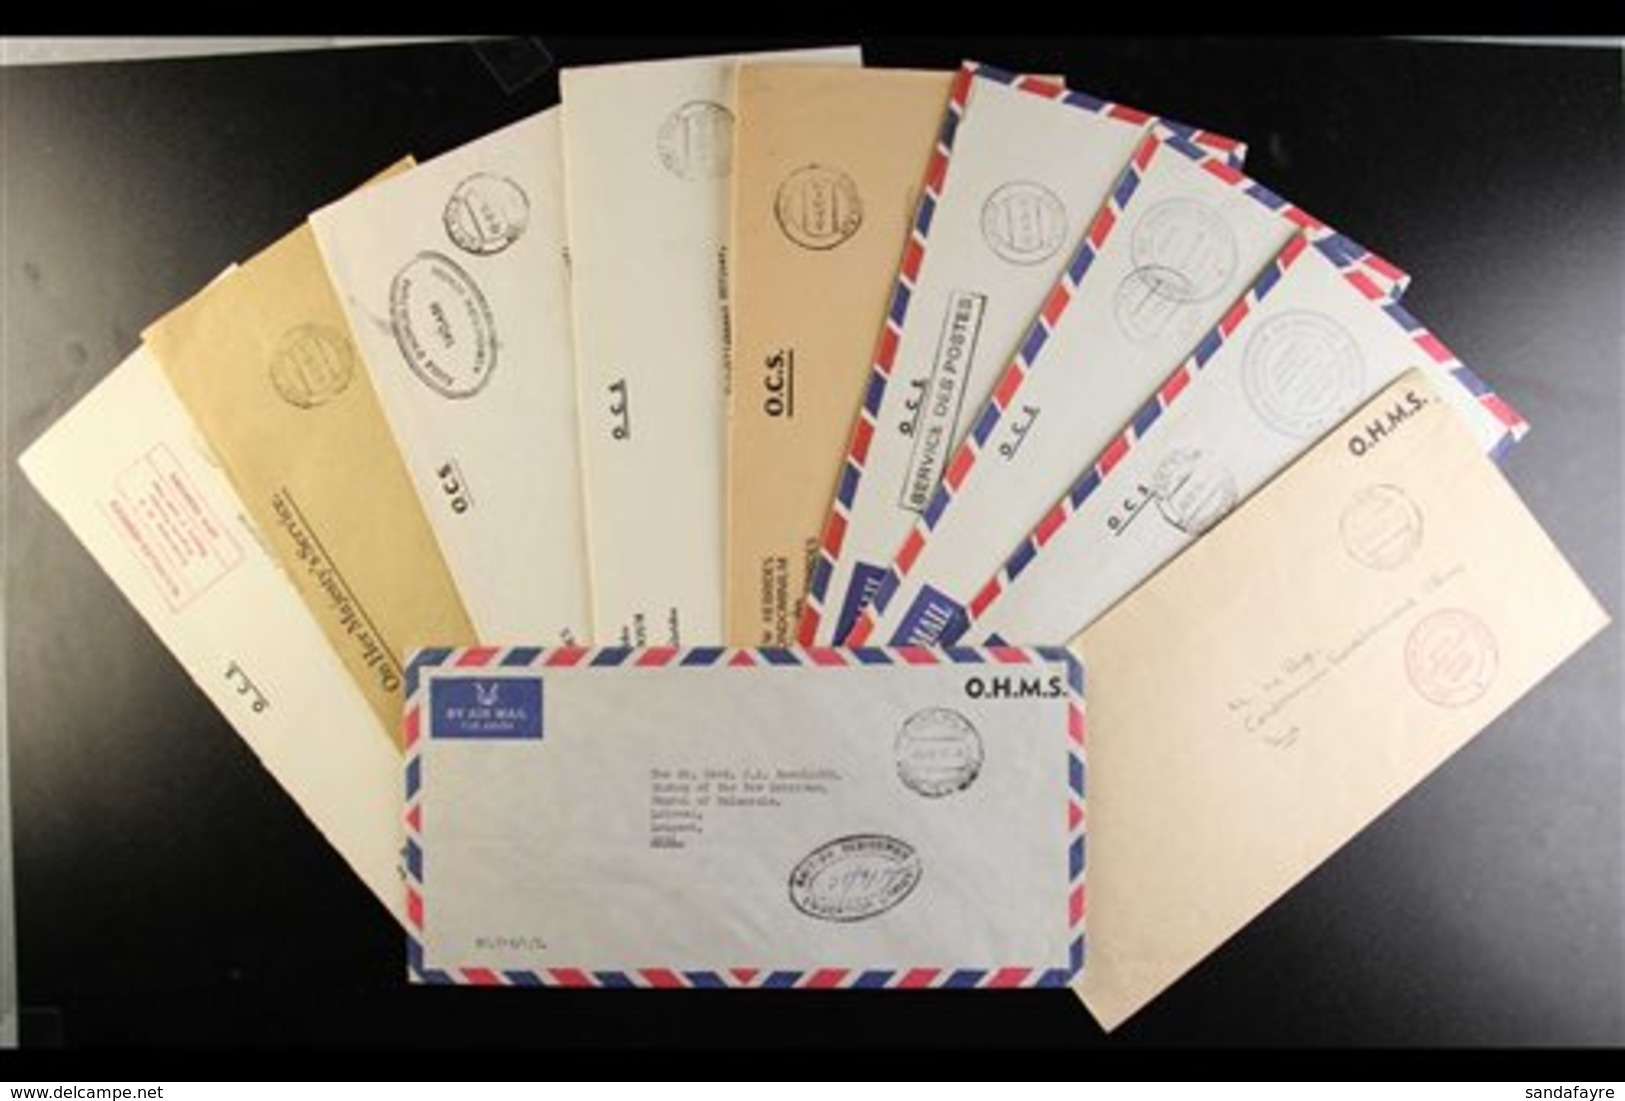 OFFICIAL MAIL Addressed To Various Officials And The Bishop Of The New Hebrides, We See Range Of Internal Official Mail  - Nouvelles-Hébrides